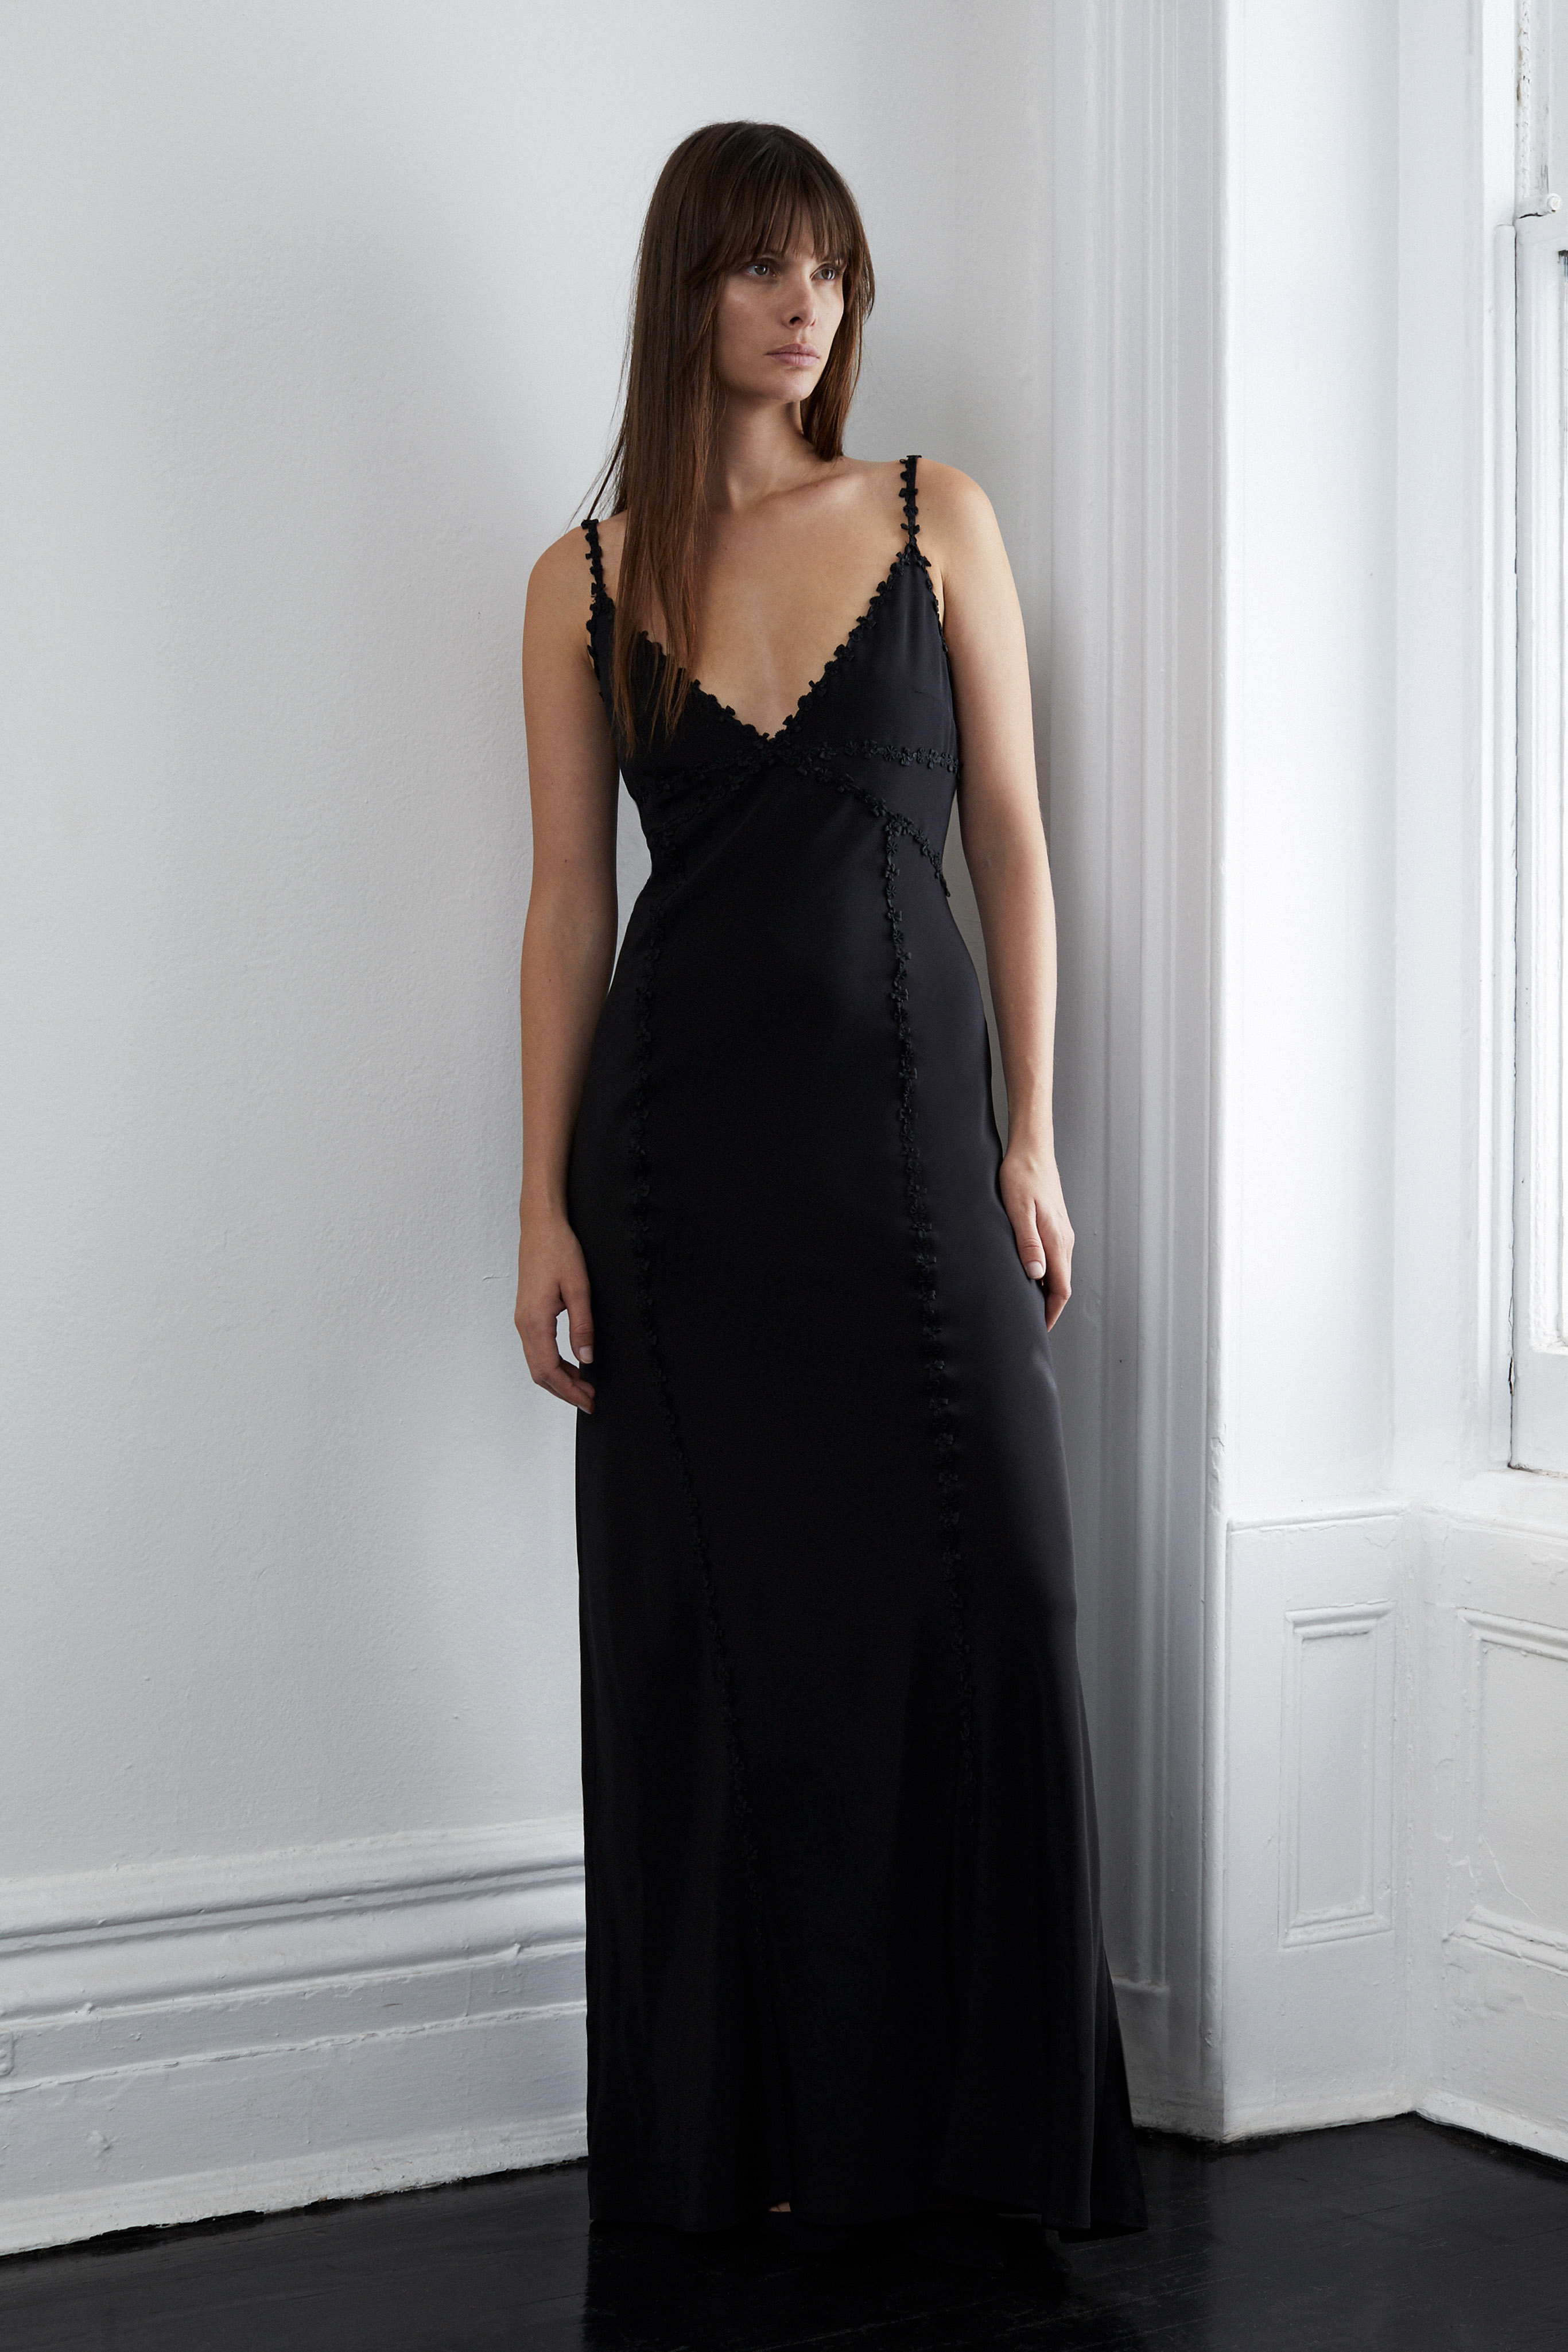 lein fall 2018 wedding dress black v-neck spaghetti strap